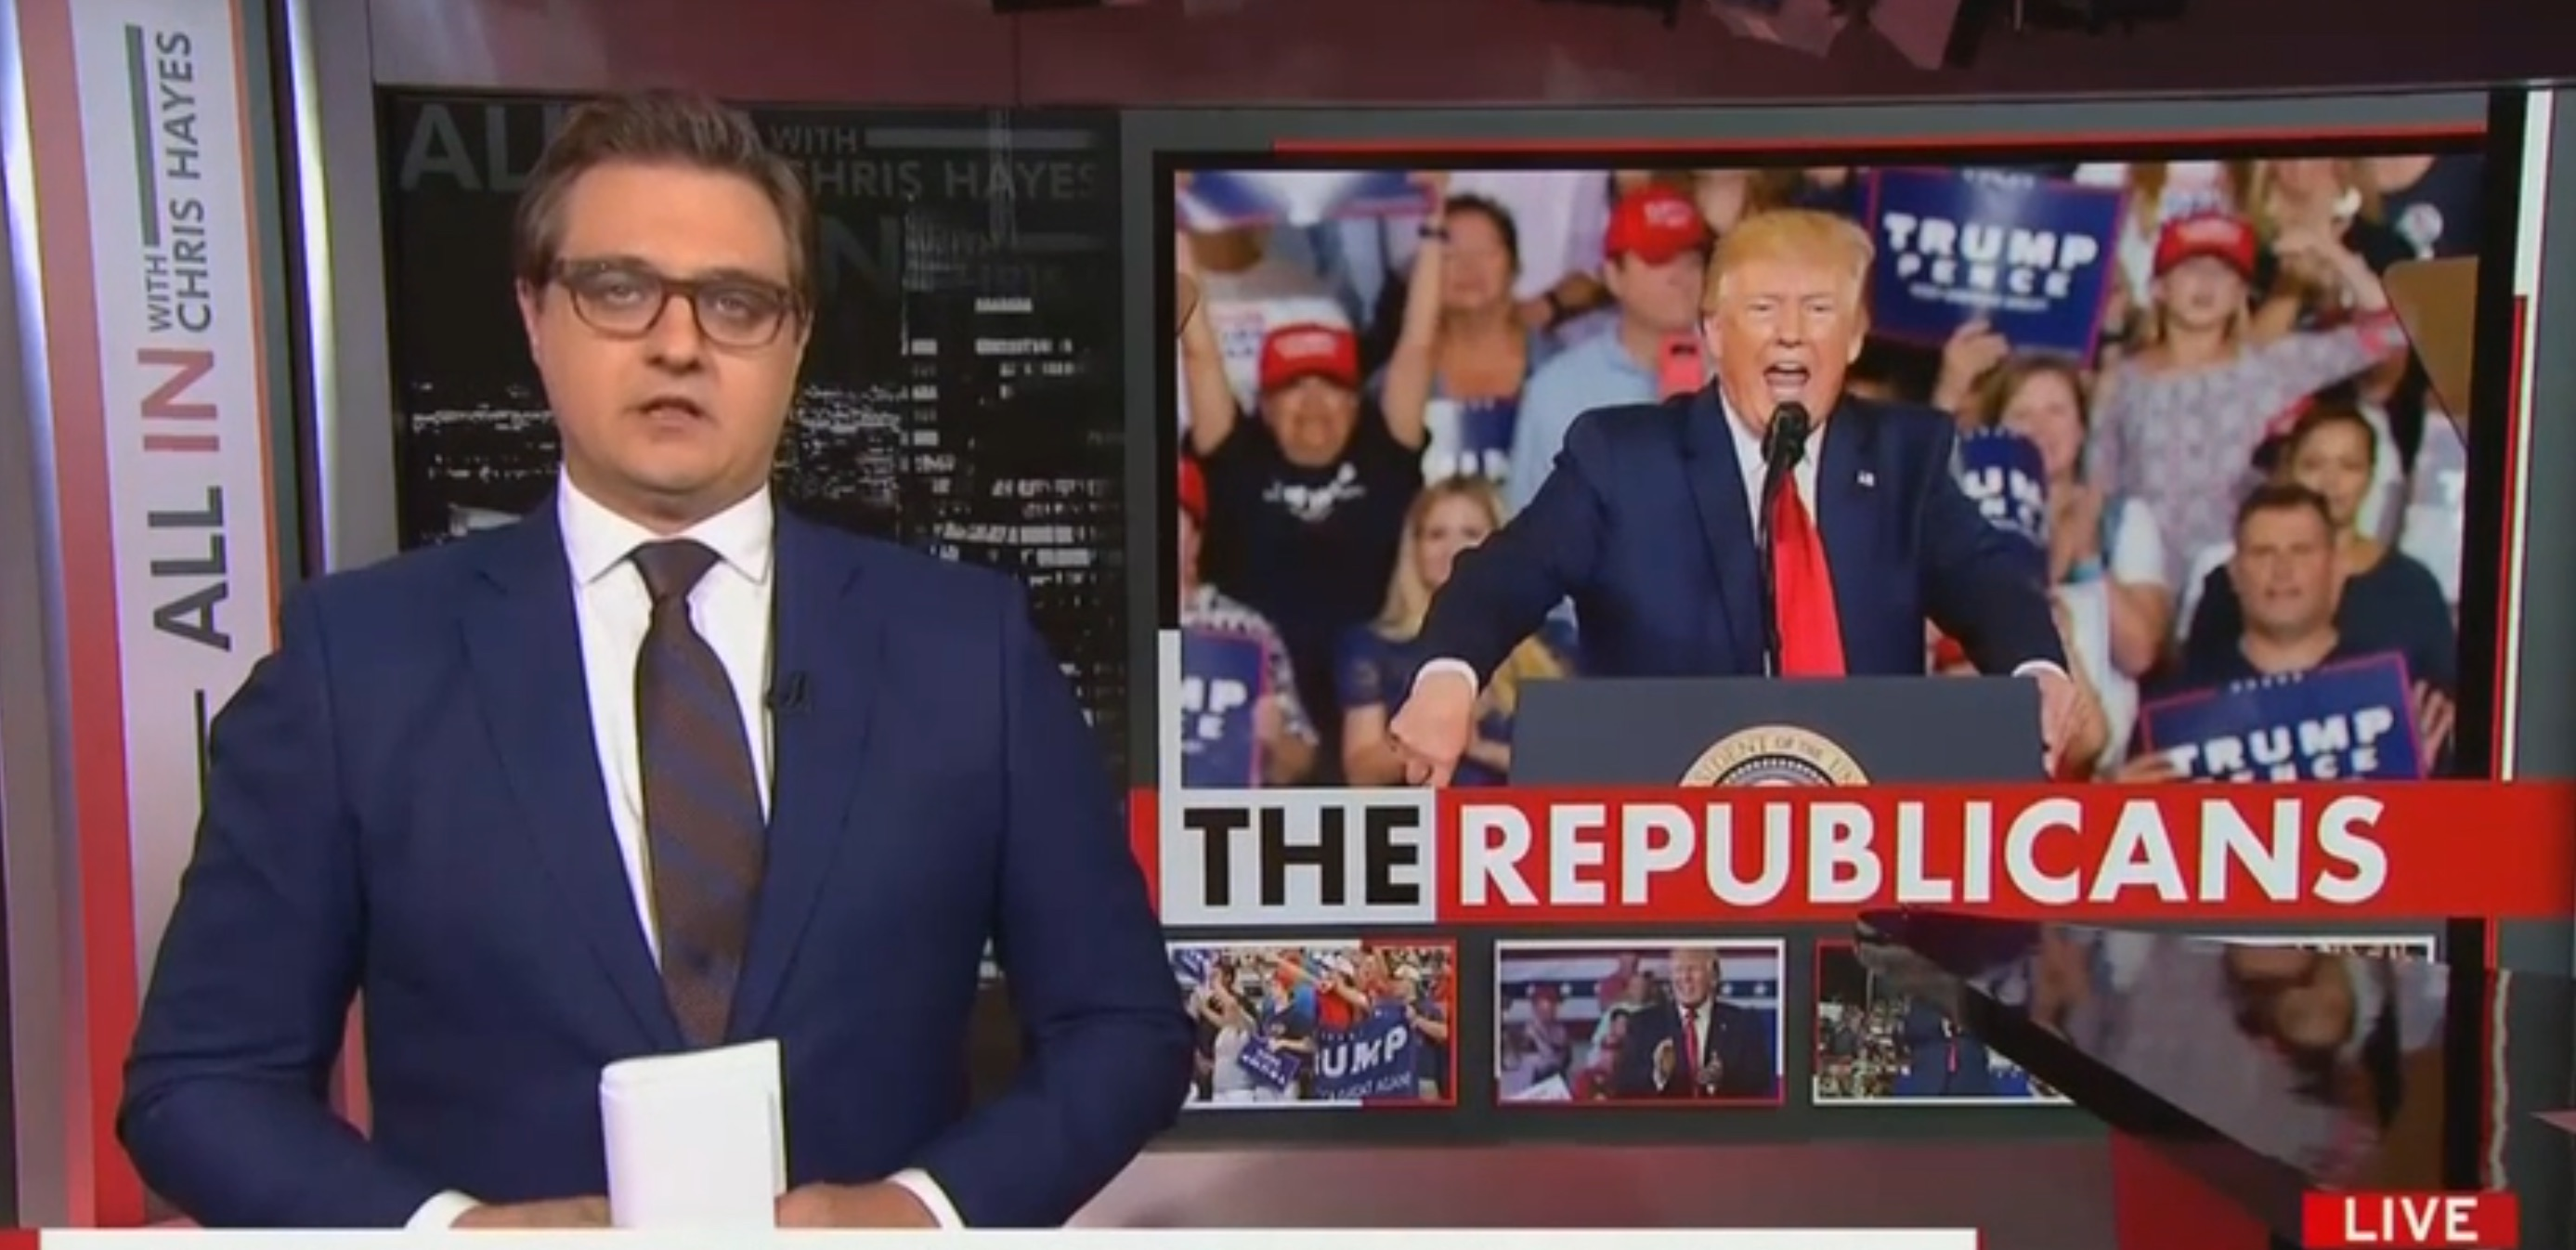 Chris Hayes: Trump's base must have heart 'ripped out